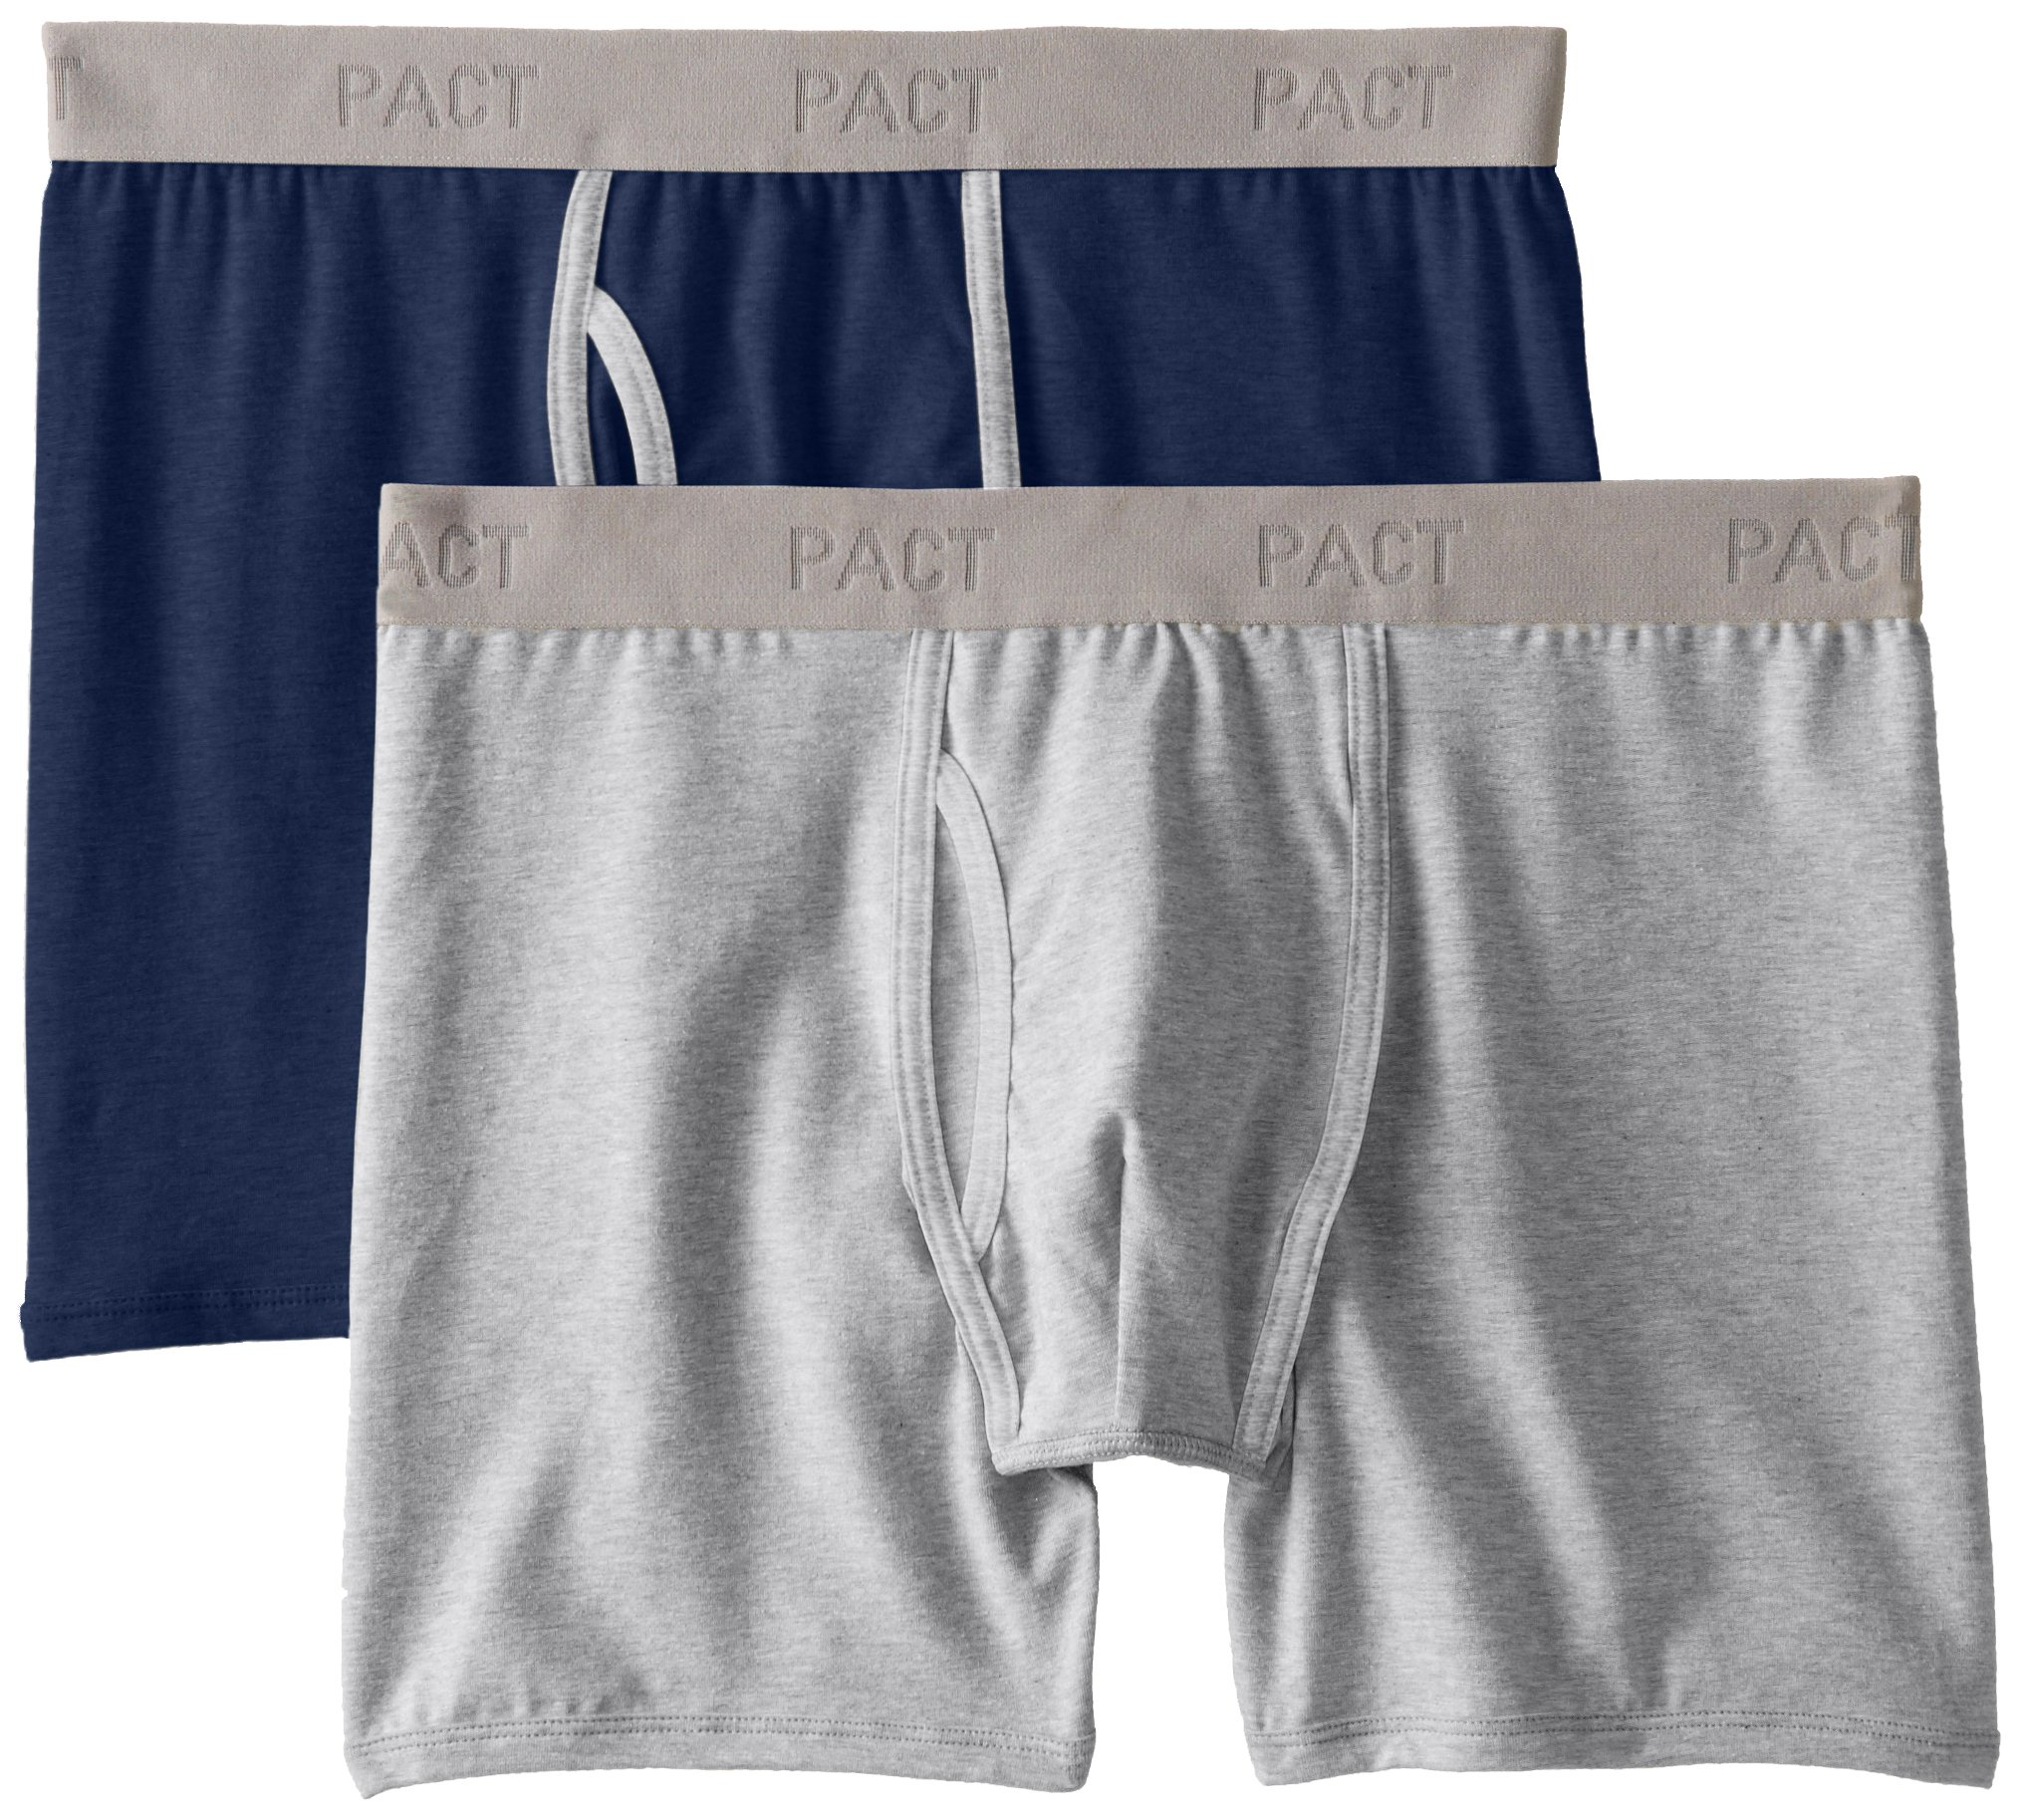 6462deceae27 Galleon - Pact Men's 2-Pack Organic Cotton Stretch Boxer Brief Underwear,  Heather Grey/Navy Medium